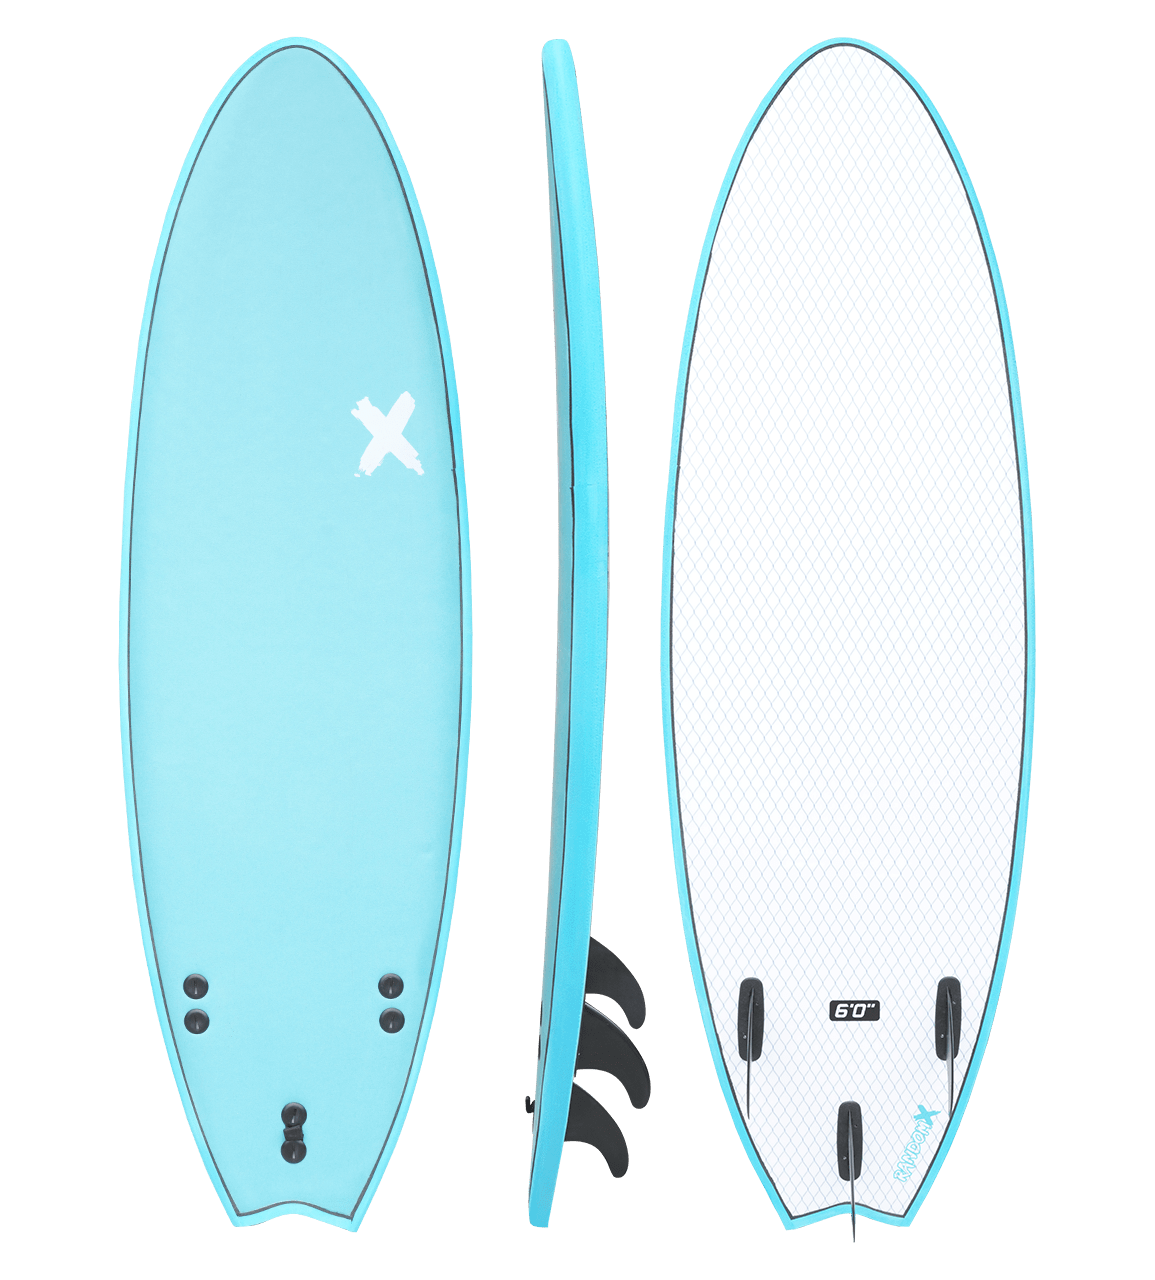 Random X Swallow Foam Surfboard 6' surf Coastline International